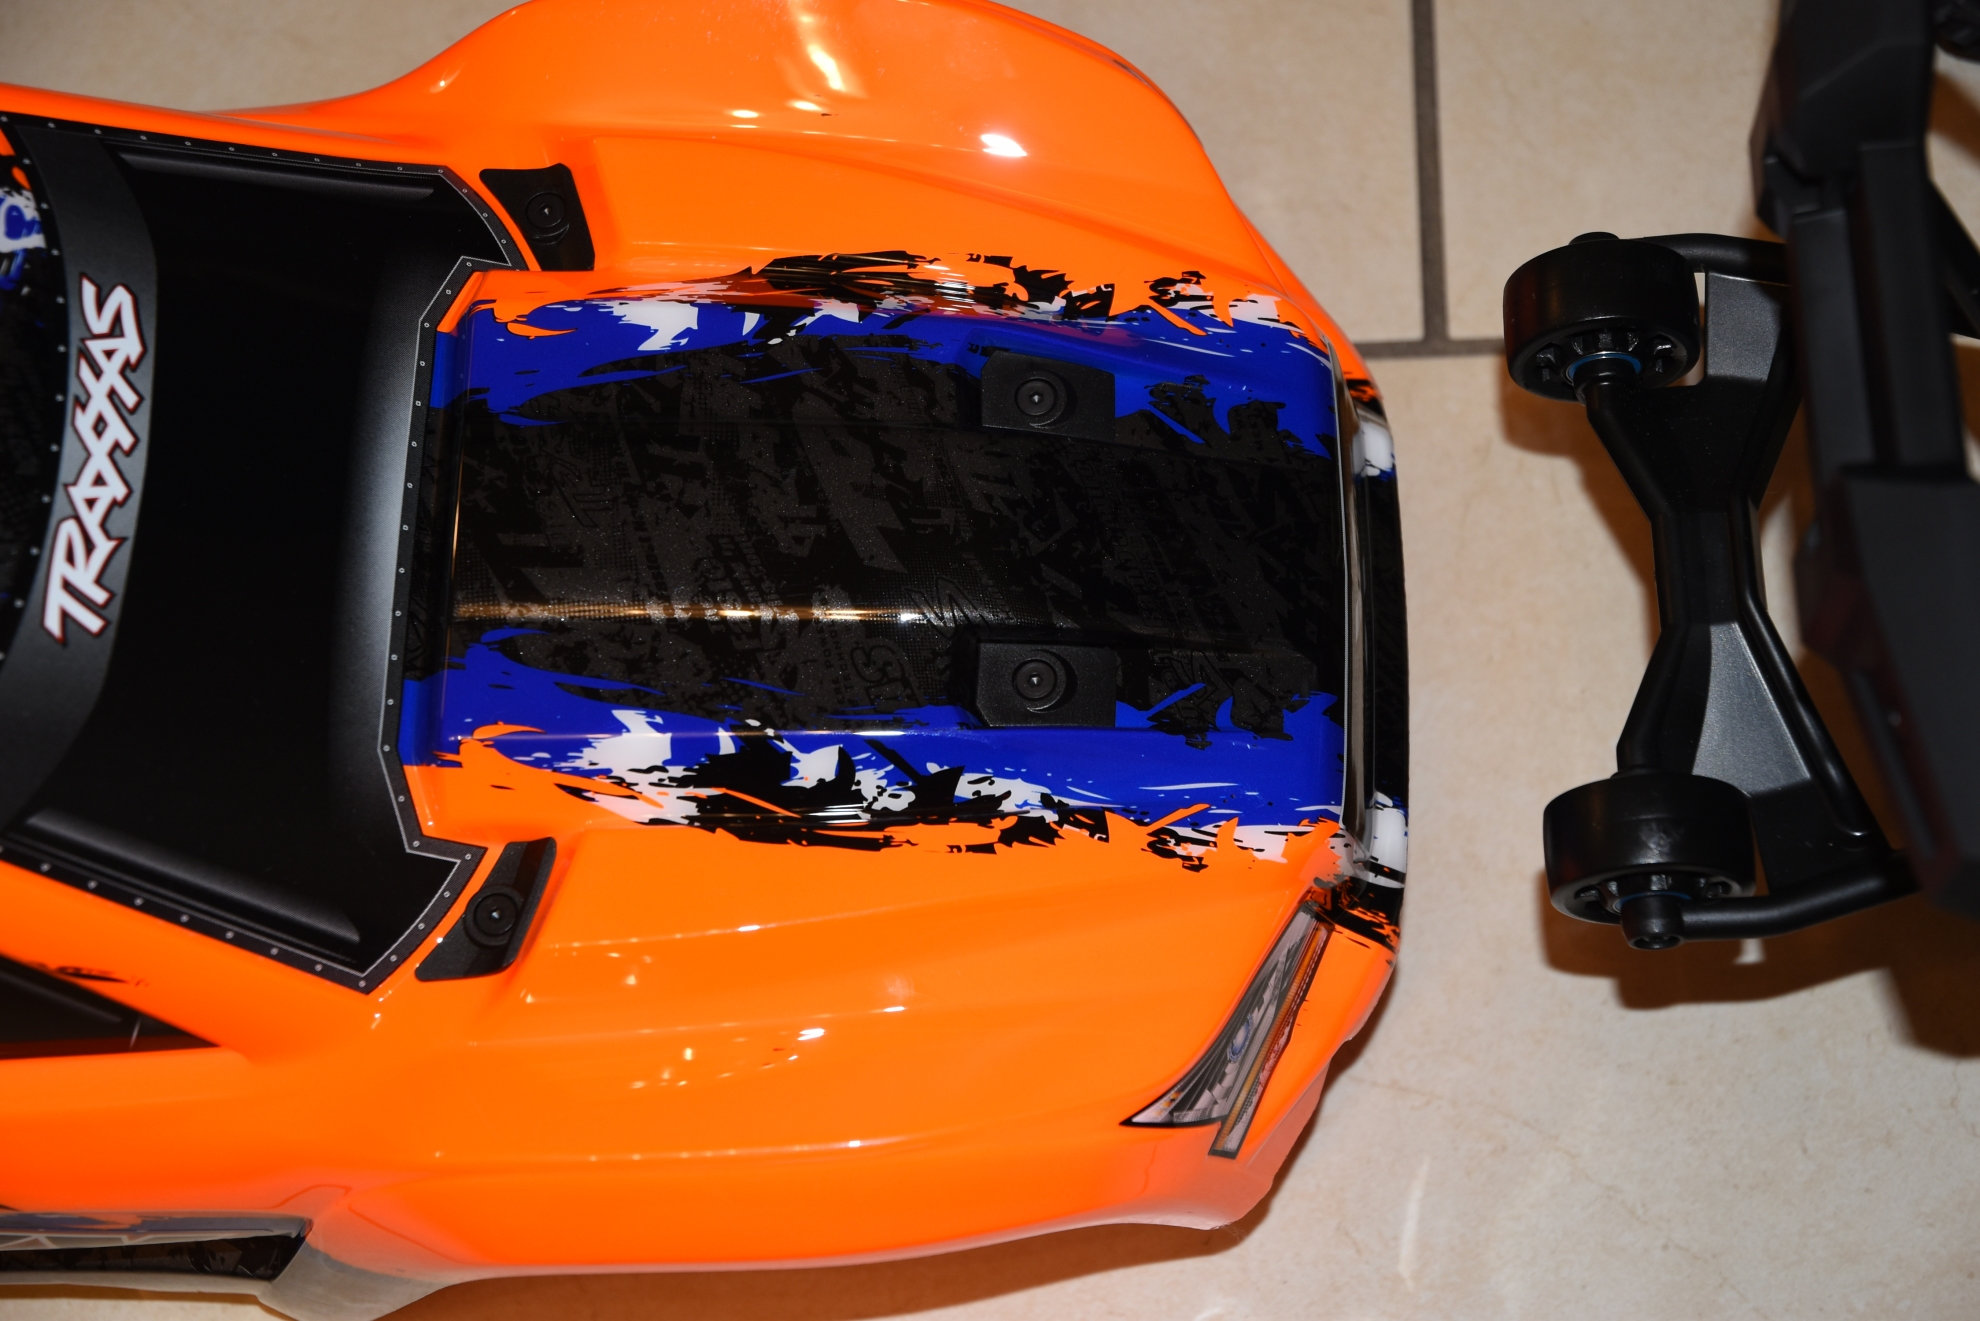 Xmaxx orange mécanique  - Page 2 Ei18